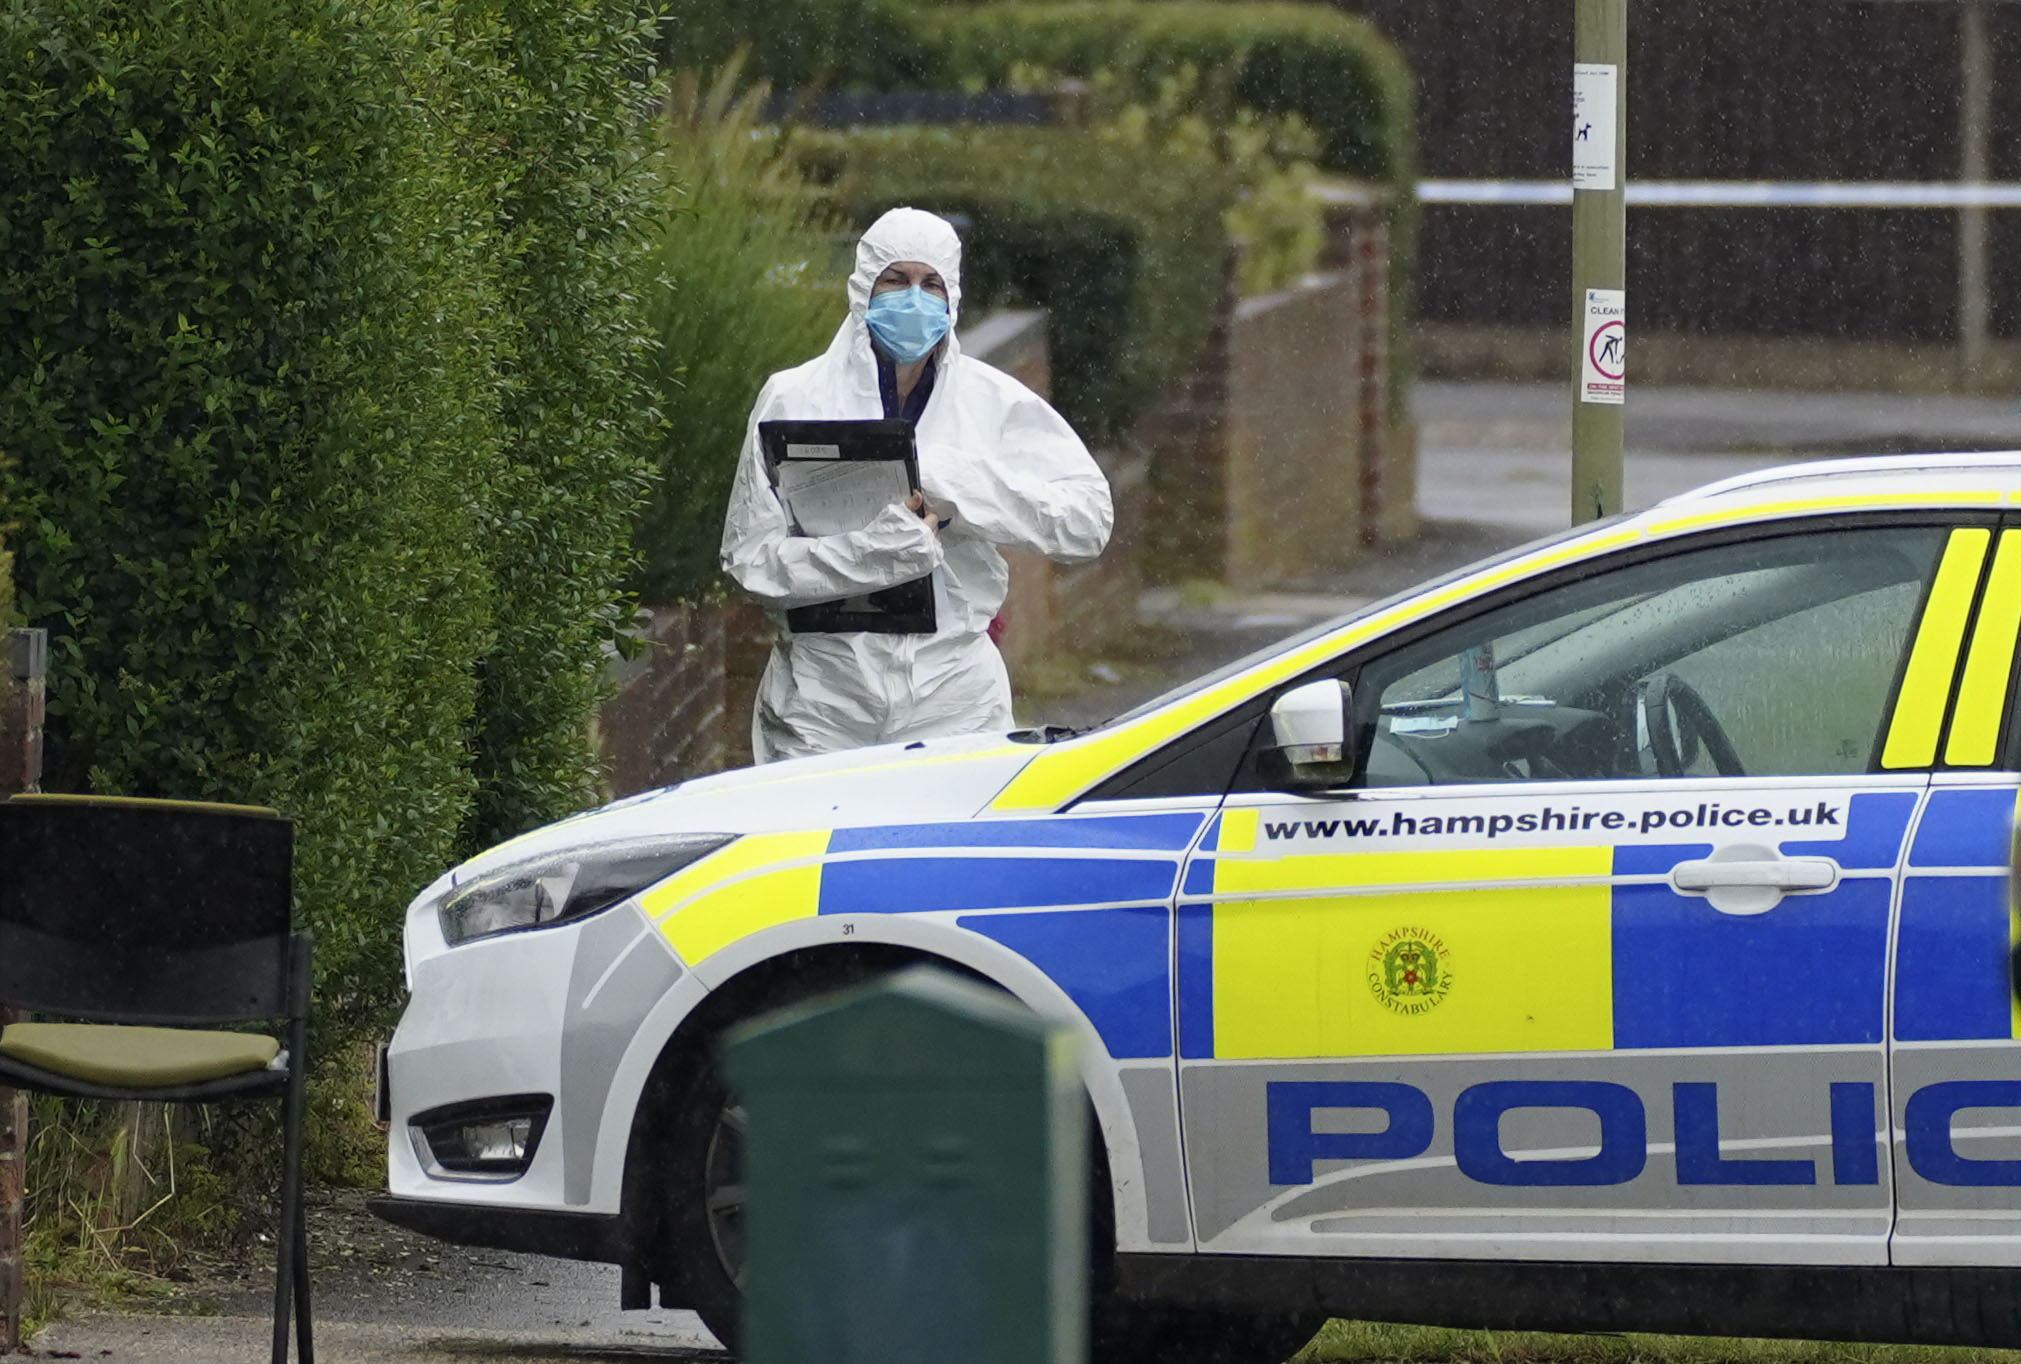 <p>Police forensics at the scene in Buckland Avenue, Basingstoke, Hampshire, after a man in his 60s and a woman in her 20s, whom had sustained serious injuries,were pronounced dead at the scene on Sunday. A 52-year-old was arrested on suspicion of murder and remains in custody. Picture date: Monday June 21, 2021.</p>